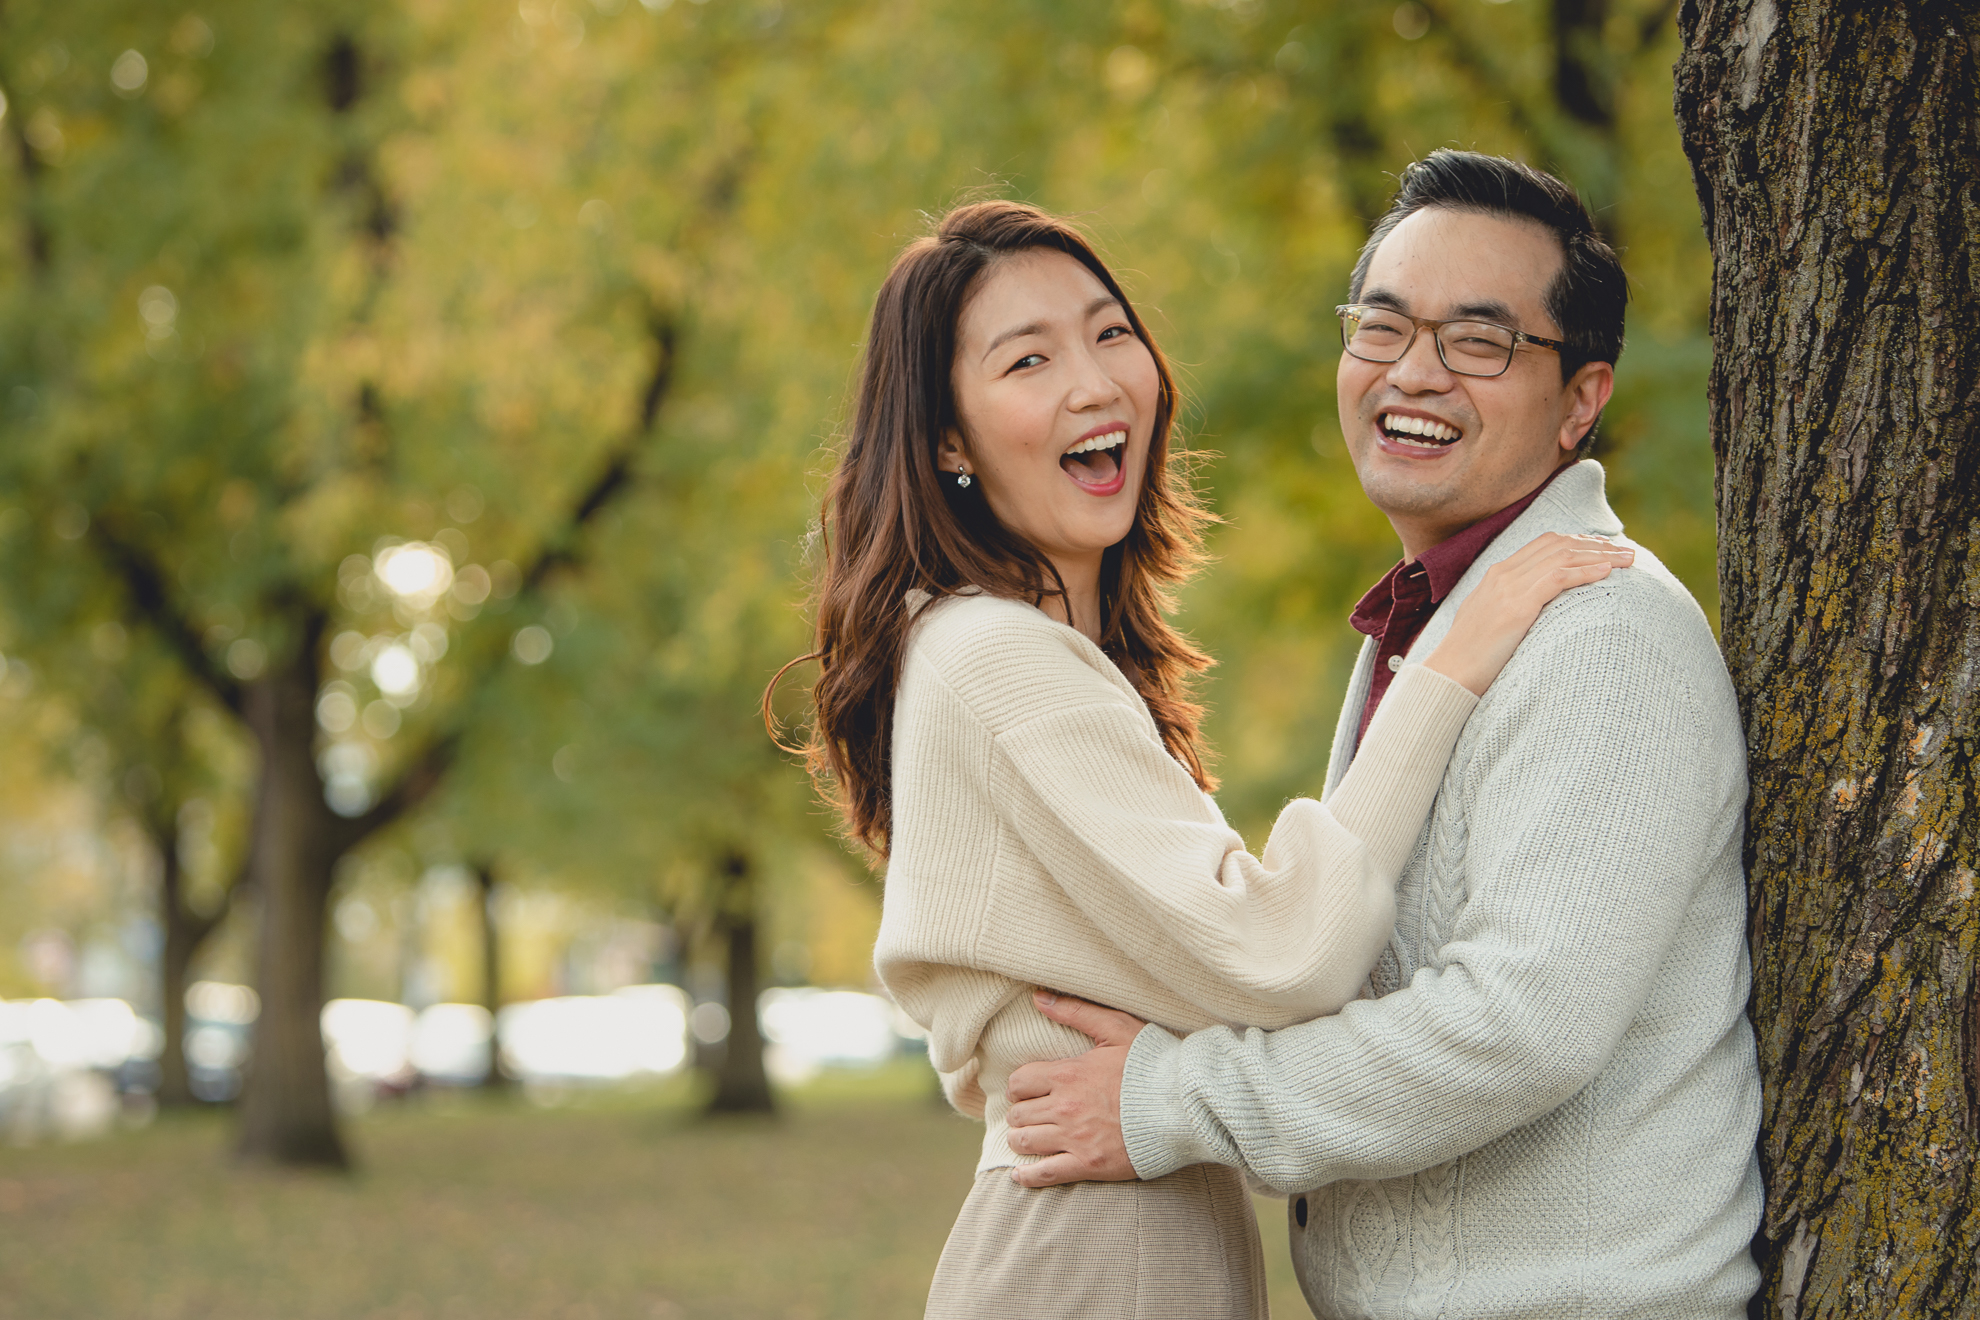 bride and groom laugh during engagement photos among fall foliage in Bidwell Parkway in Buffalo, NY